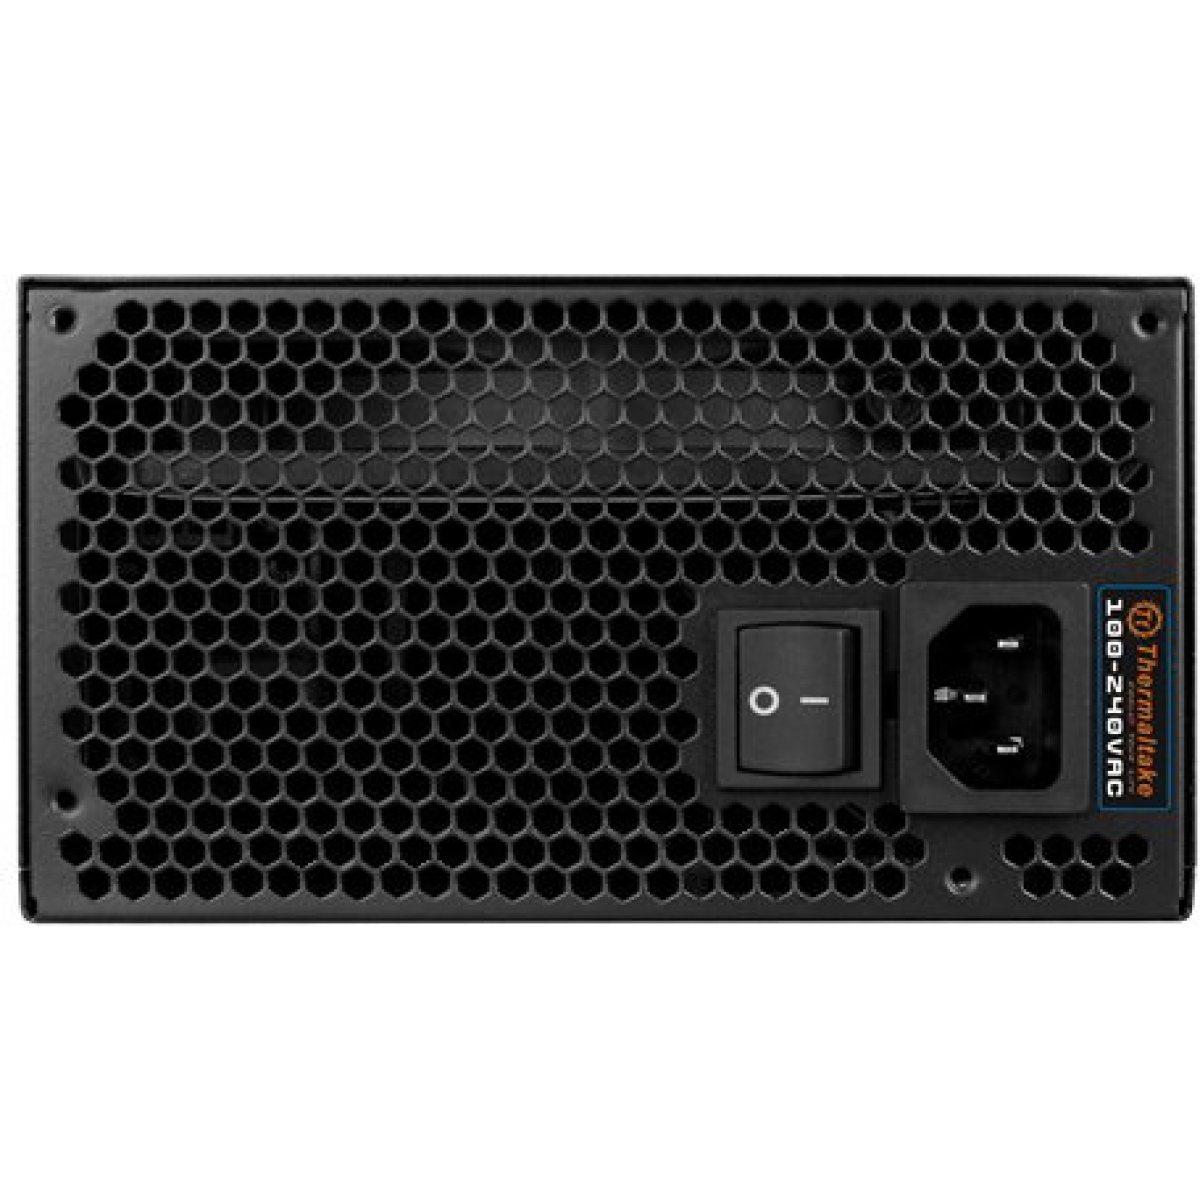 Fonte Thermaltake Smart SP-1200M 1200W, 80 Plus Bronze, PFC Ativo, Modular, SP-1200MPCBUS